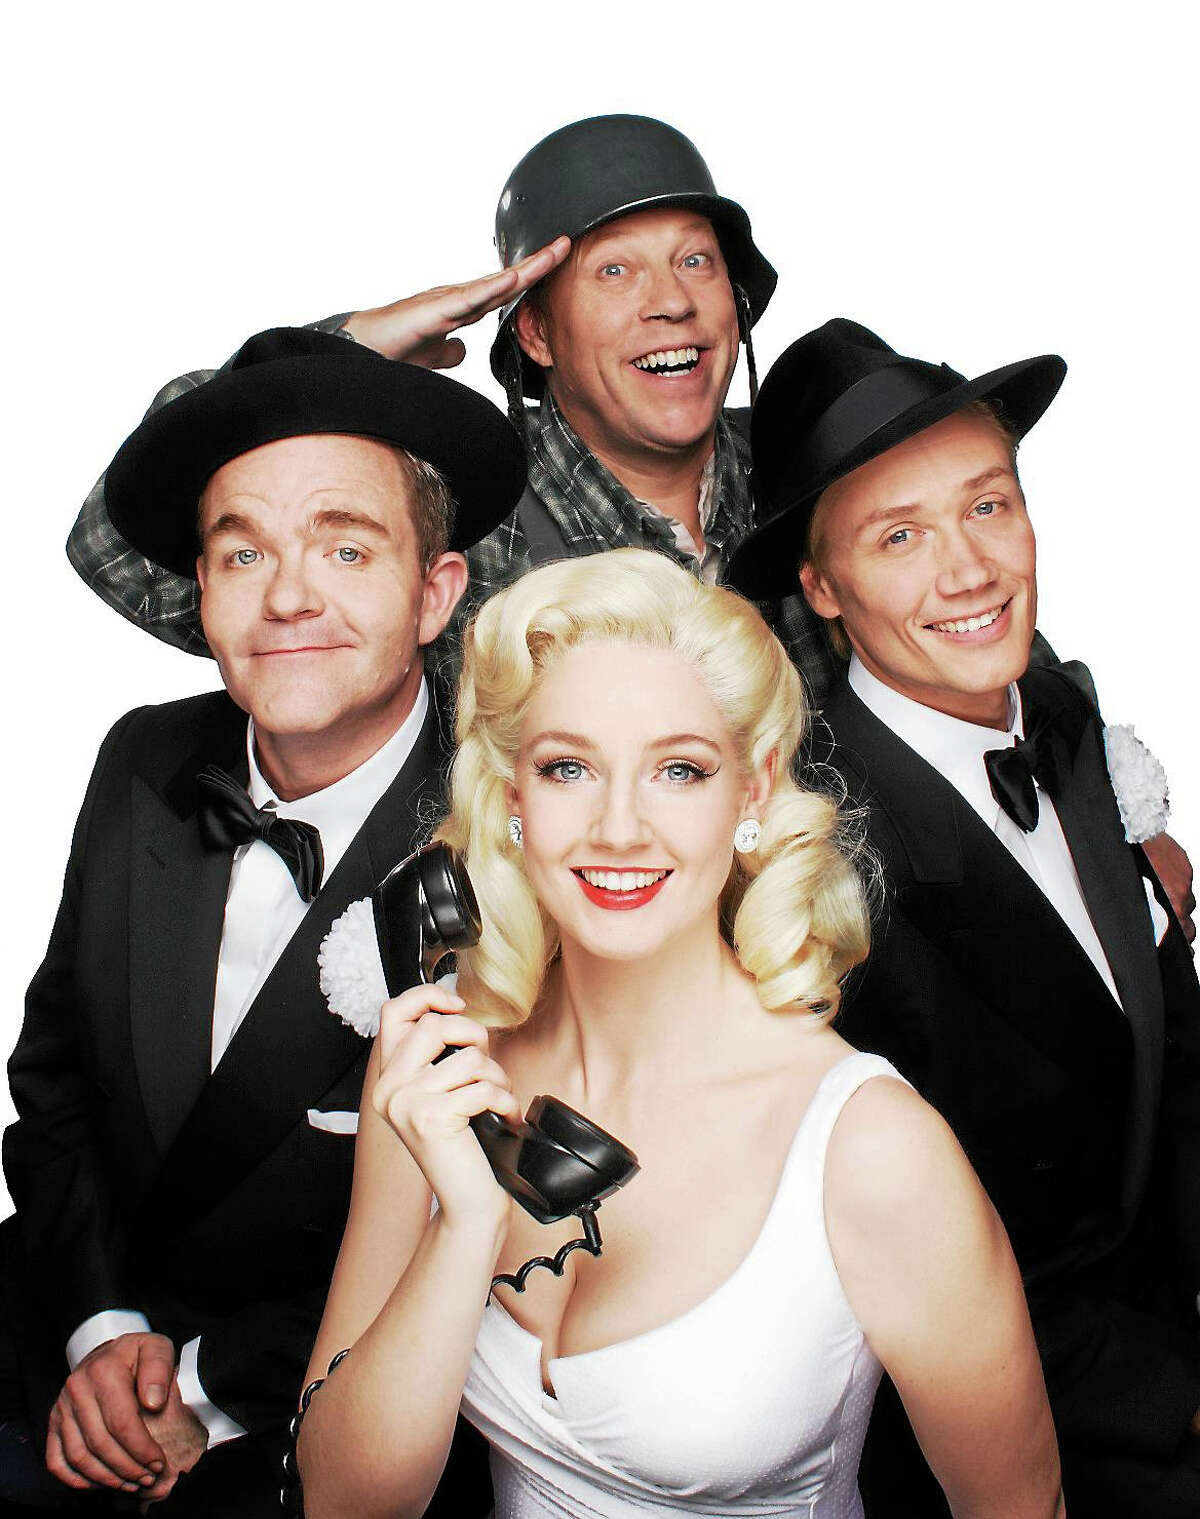 Contributed photoThe cast of The Producers, who will perform a show during their national tour, Oct. 30 in Waterbury.